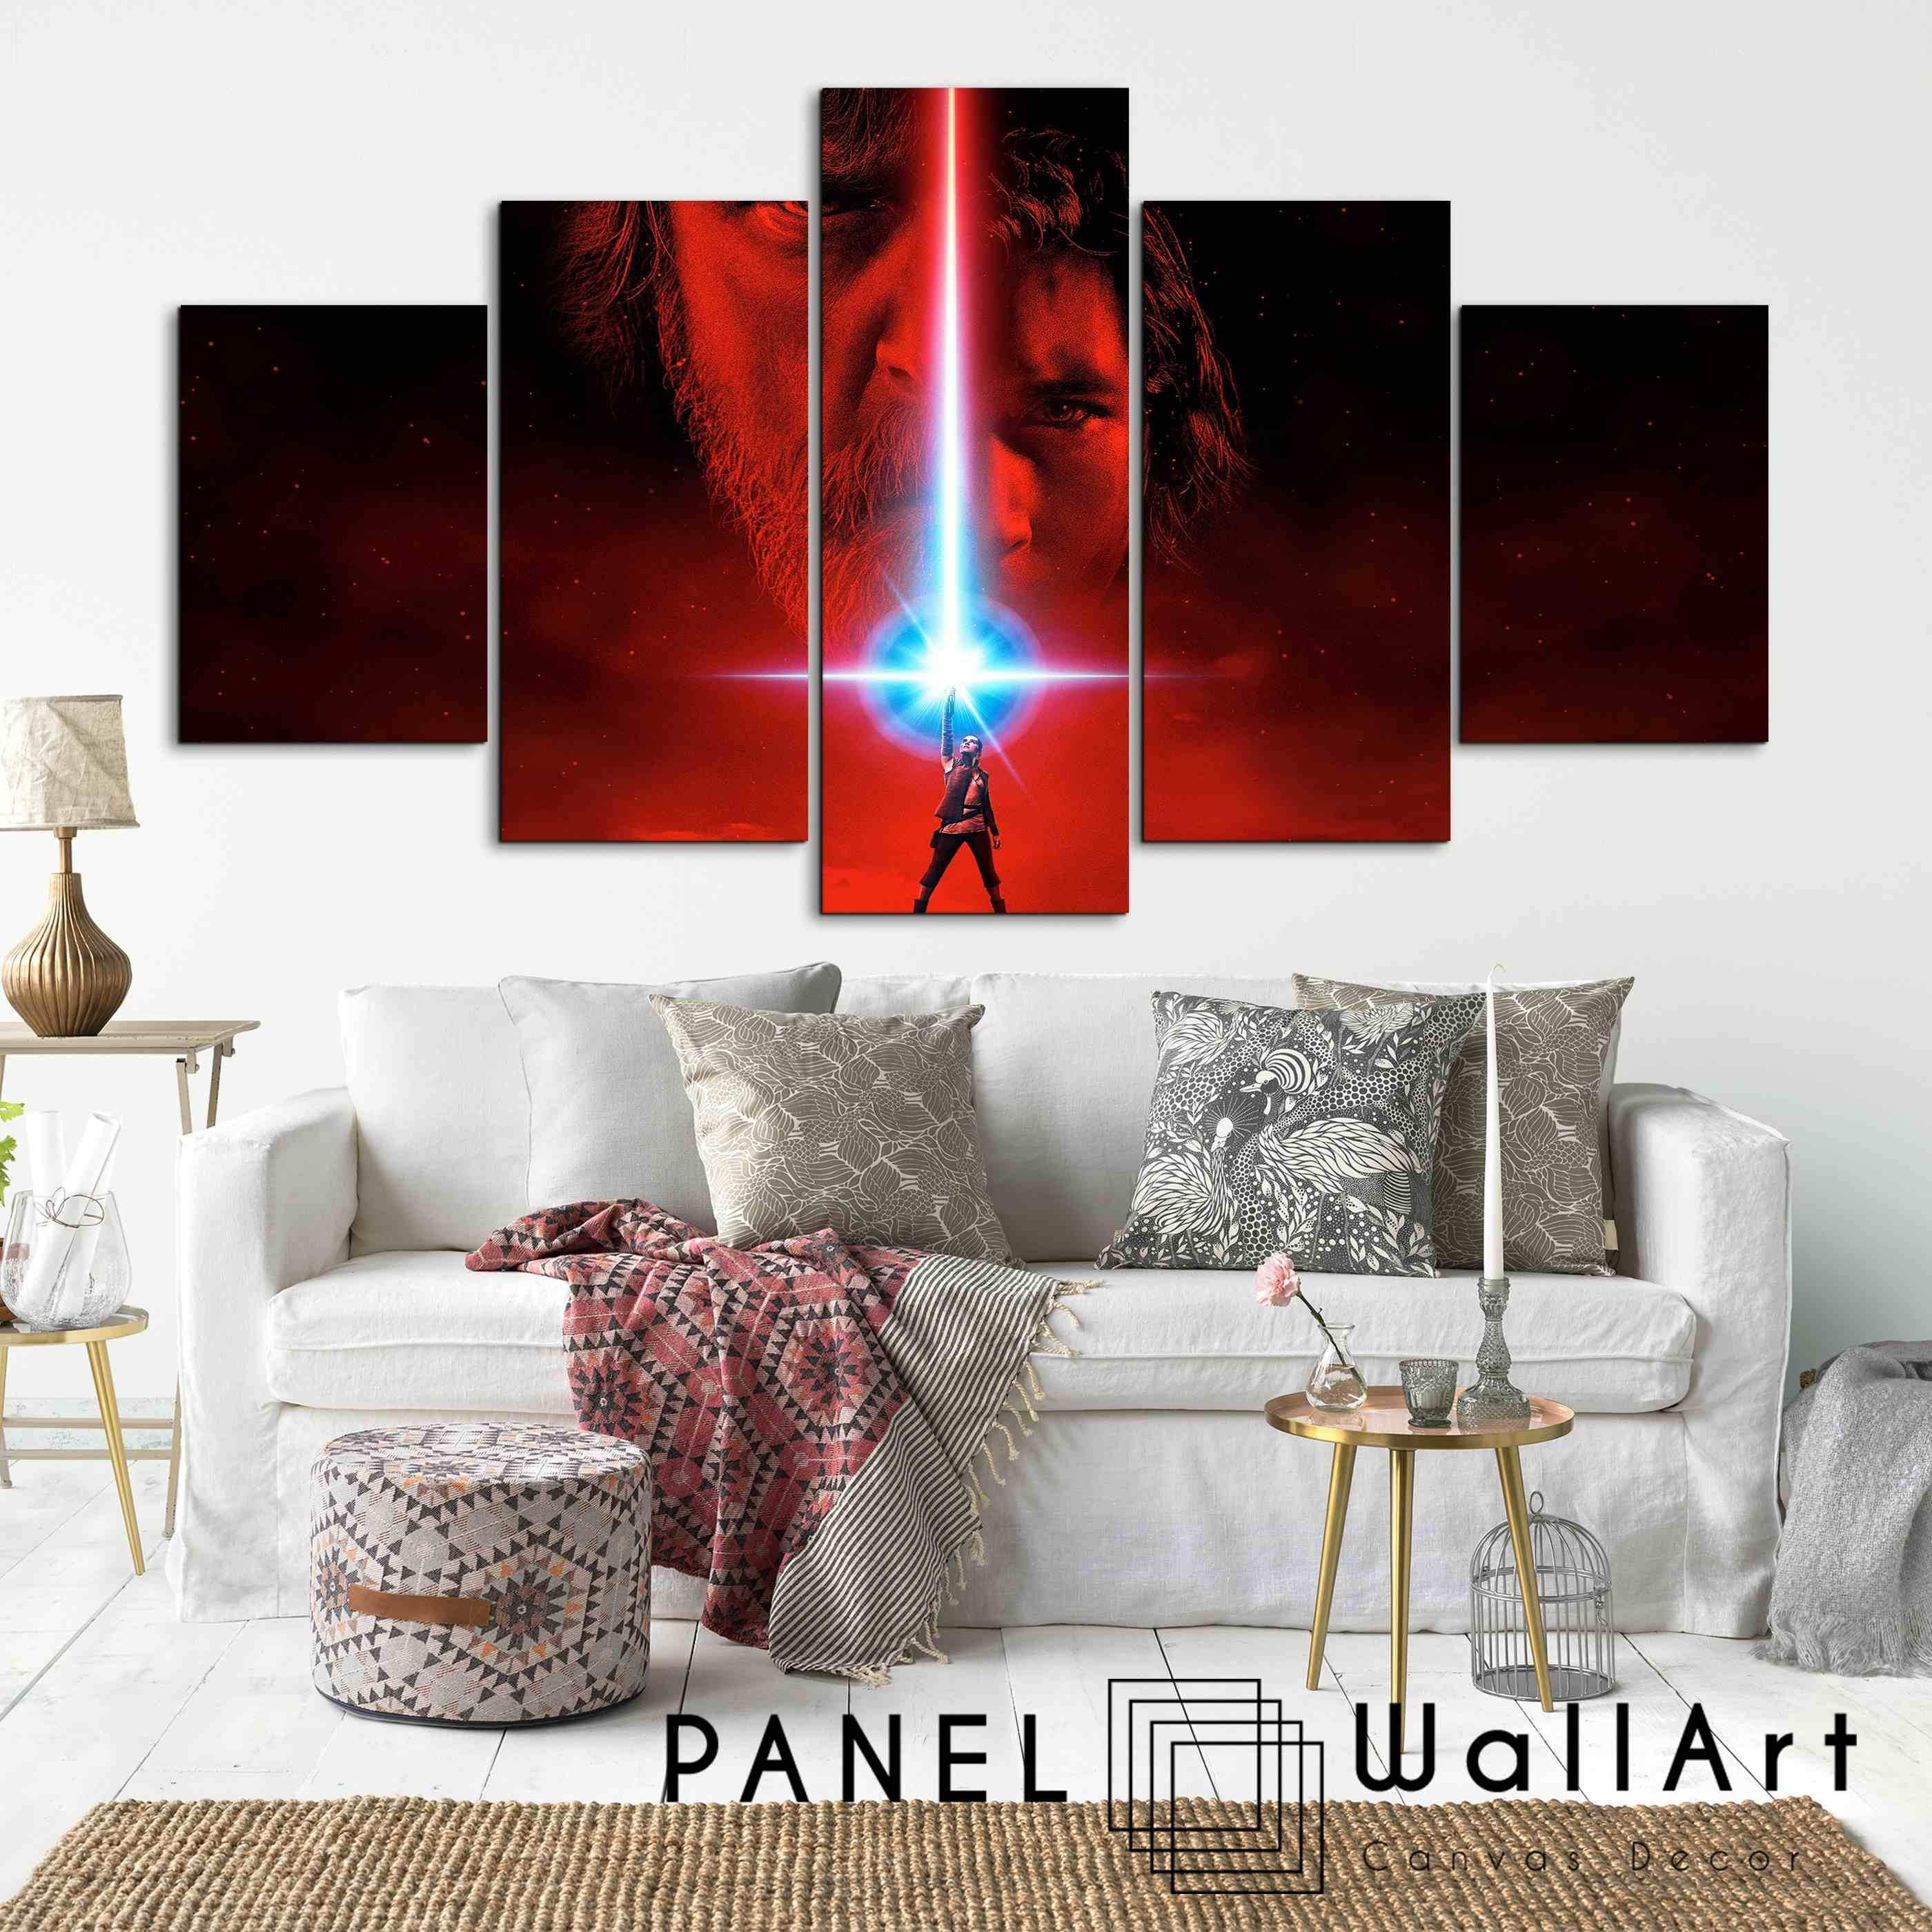 Star Wars The Last Jedi | Panel Wall Art Panelwallart Within Most Current Panel Wall Art (View 16 of 20)